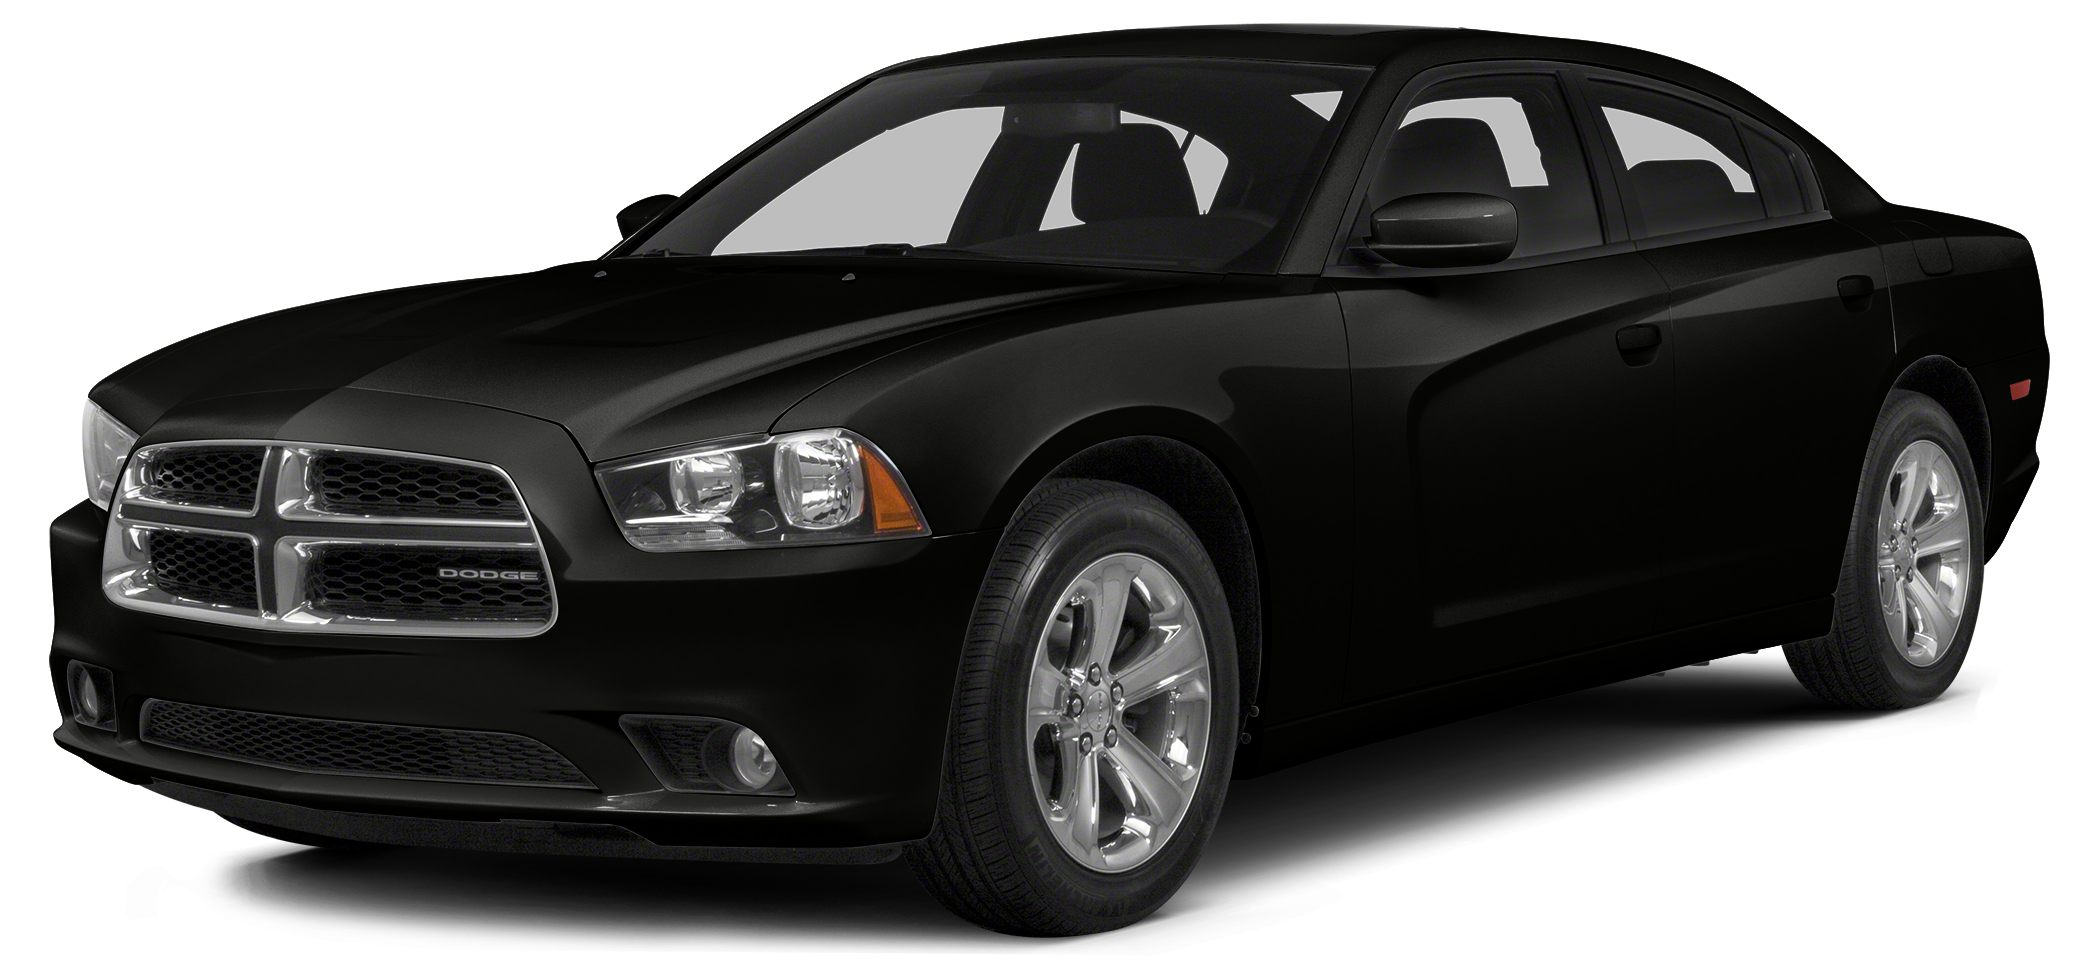 2014 Dodge Charger RT LOW MILES - 9611 Pitch Black exterior and Black interior Moonroof Nav Sy